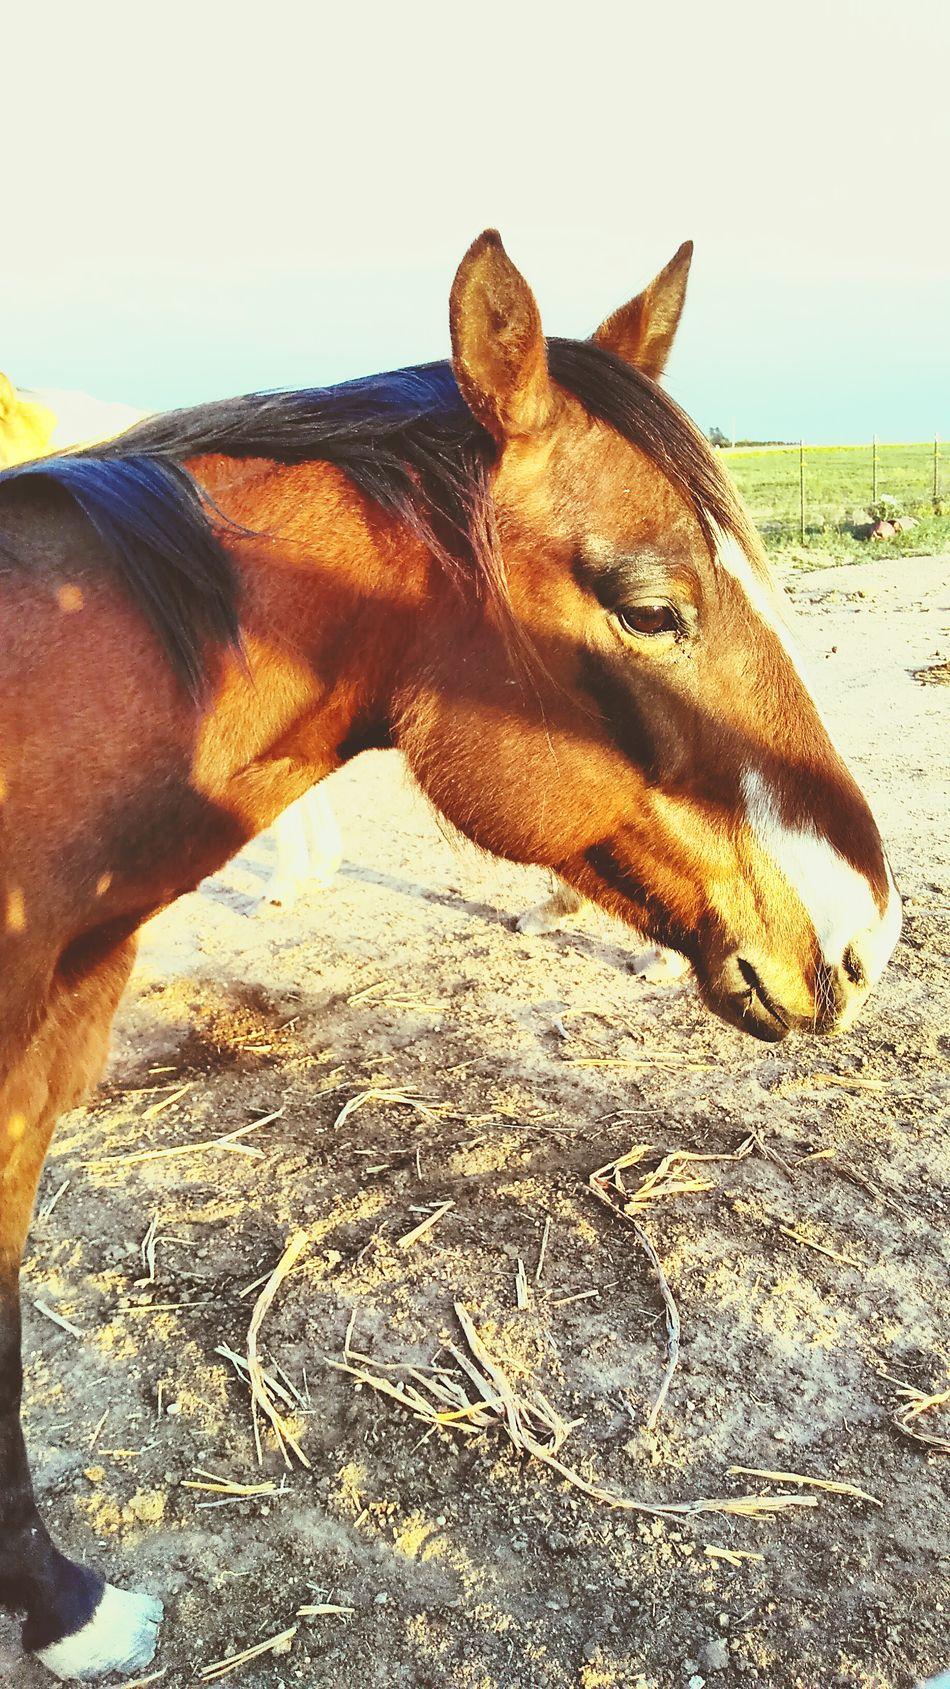 Ranch horses One Animal Horse Animal Themes Mammal Day Outdoors No People Close-up Nature Rural_living Hoof Corral Stable Pasture Barn Equine Animal Theme Cowboy Lifestyle Country Farm Ranch Livestock Working Animal Pony